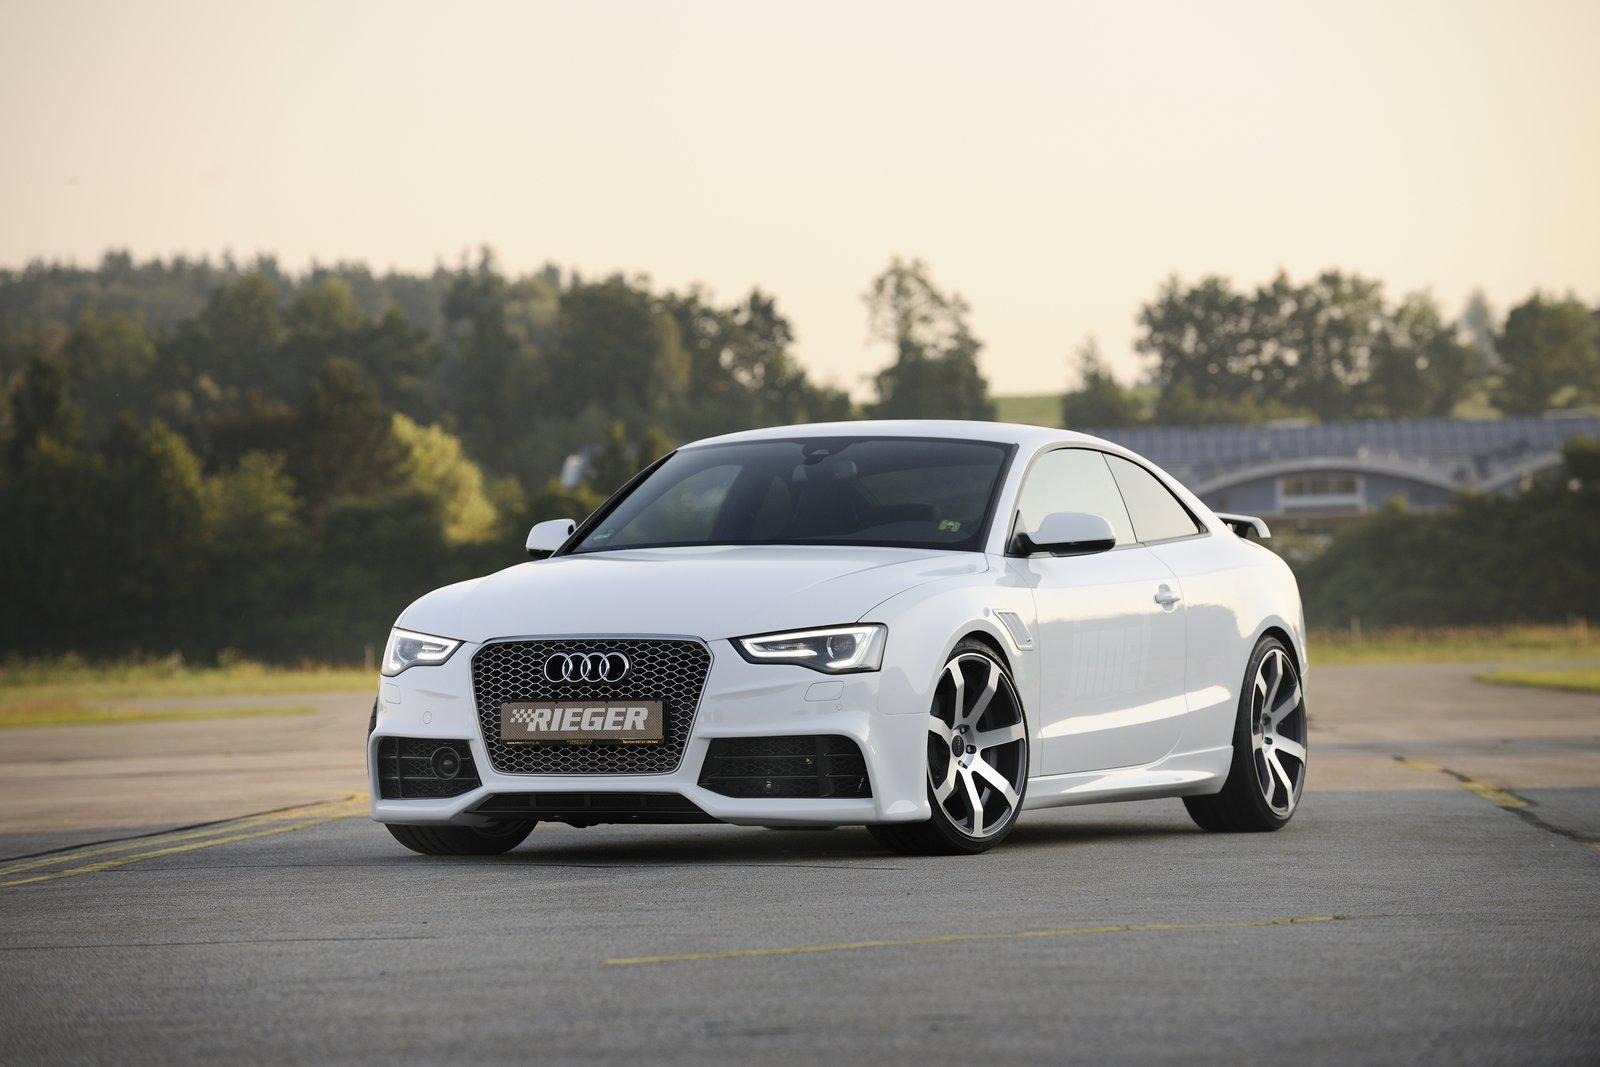 2012-Audi-A5-Facelift-Rieger-Tuning-2.jpg?imgmax=1800